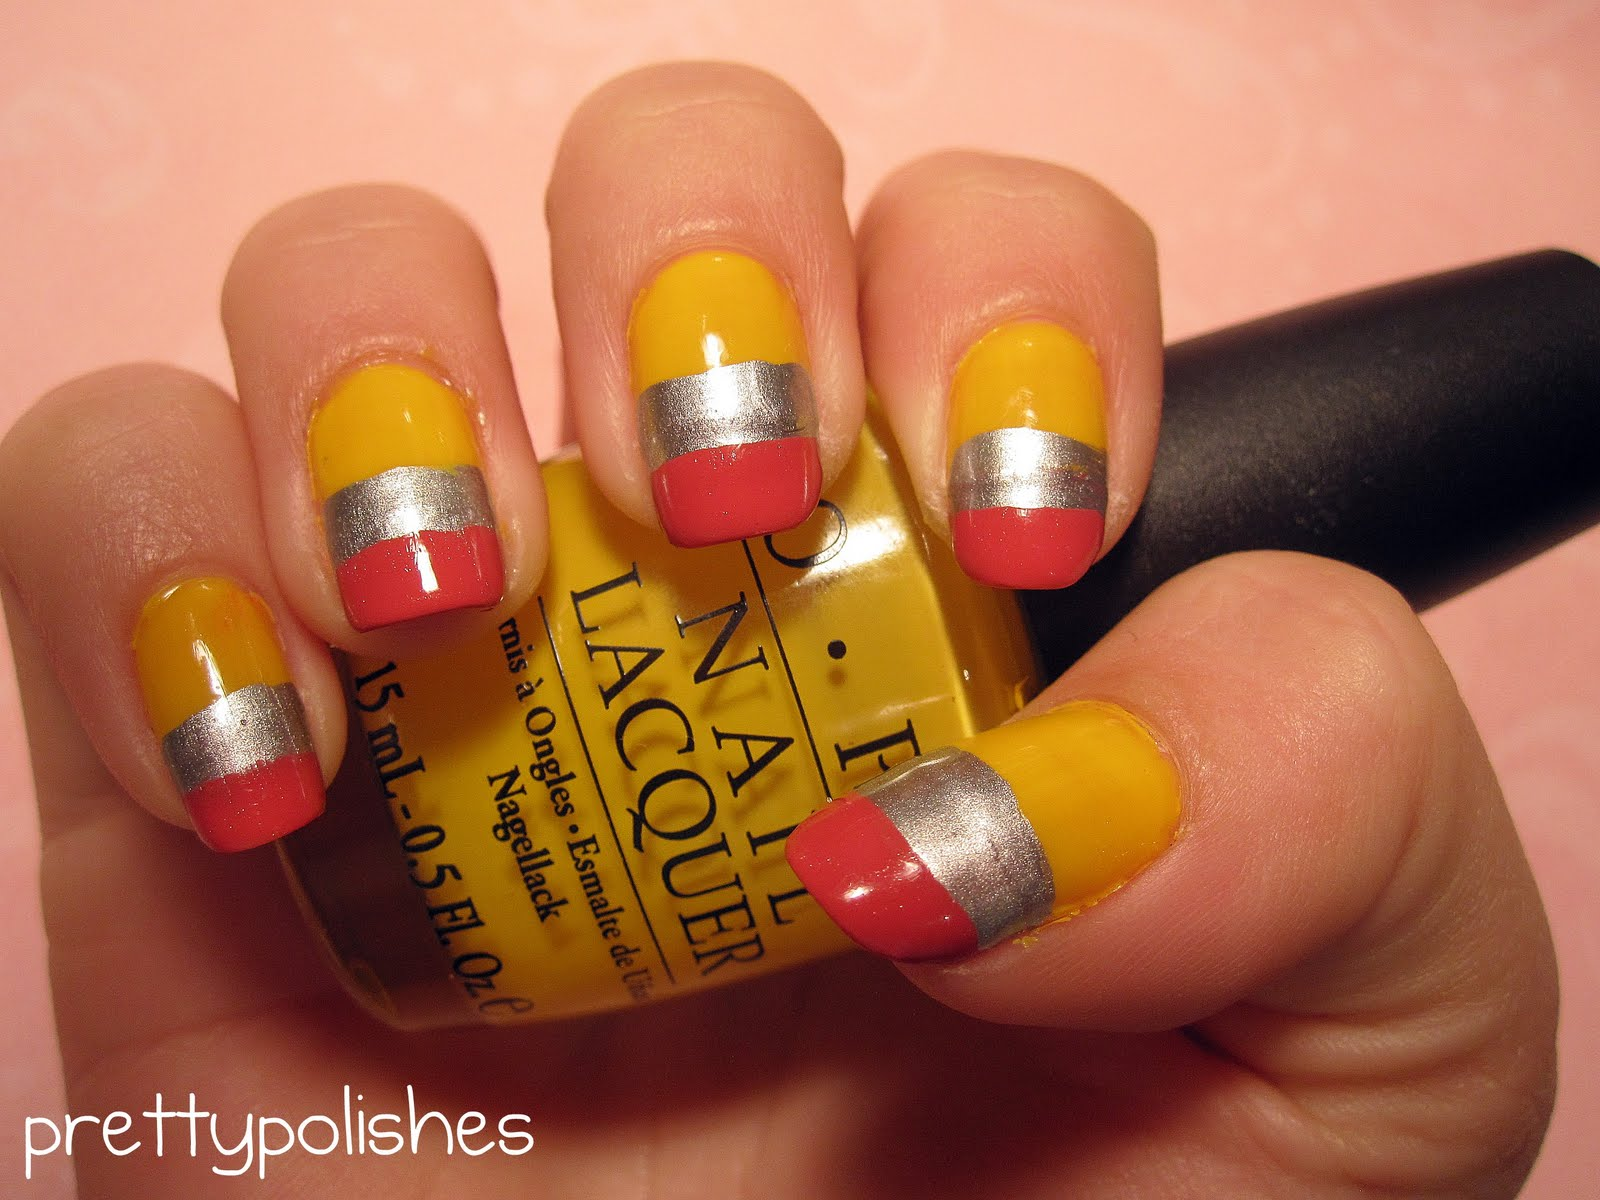 prettypolishes: Back-To-School Pencil Inspired Nail Art